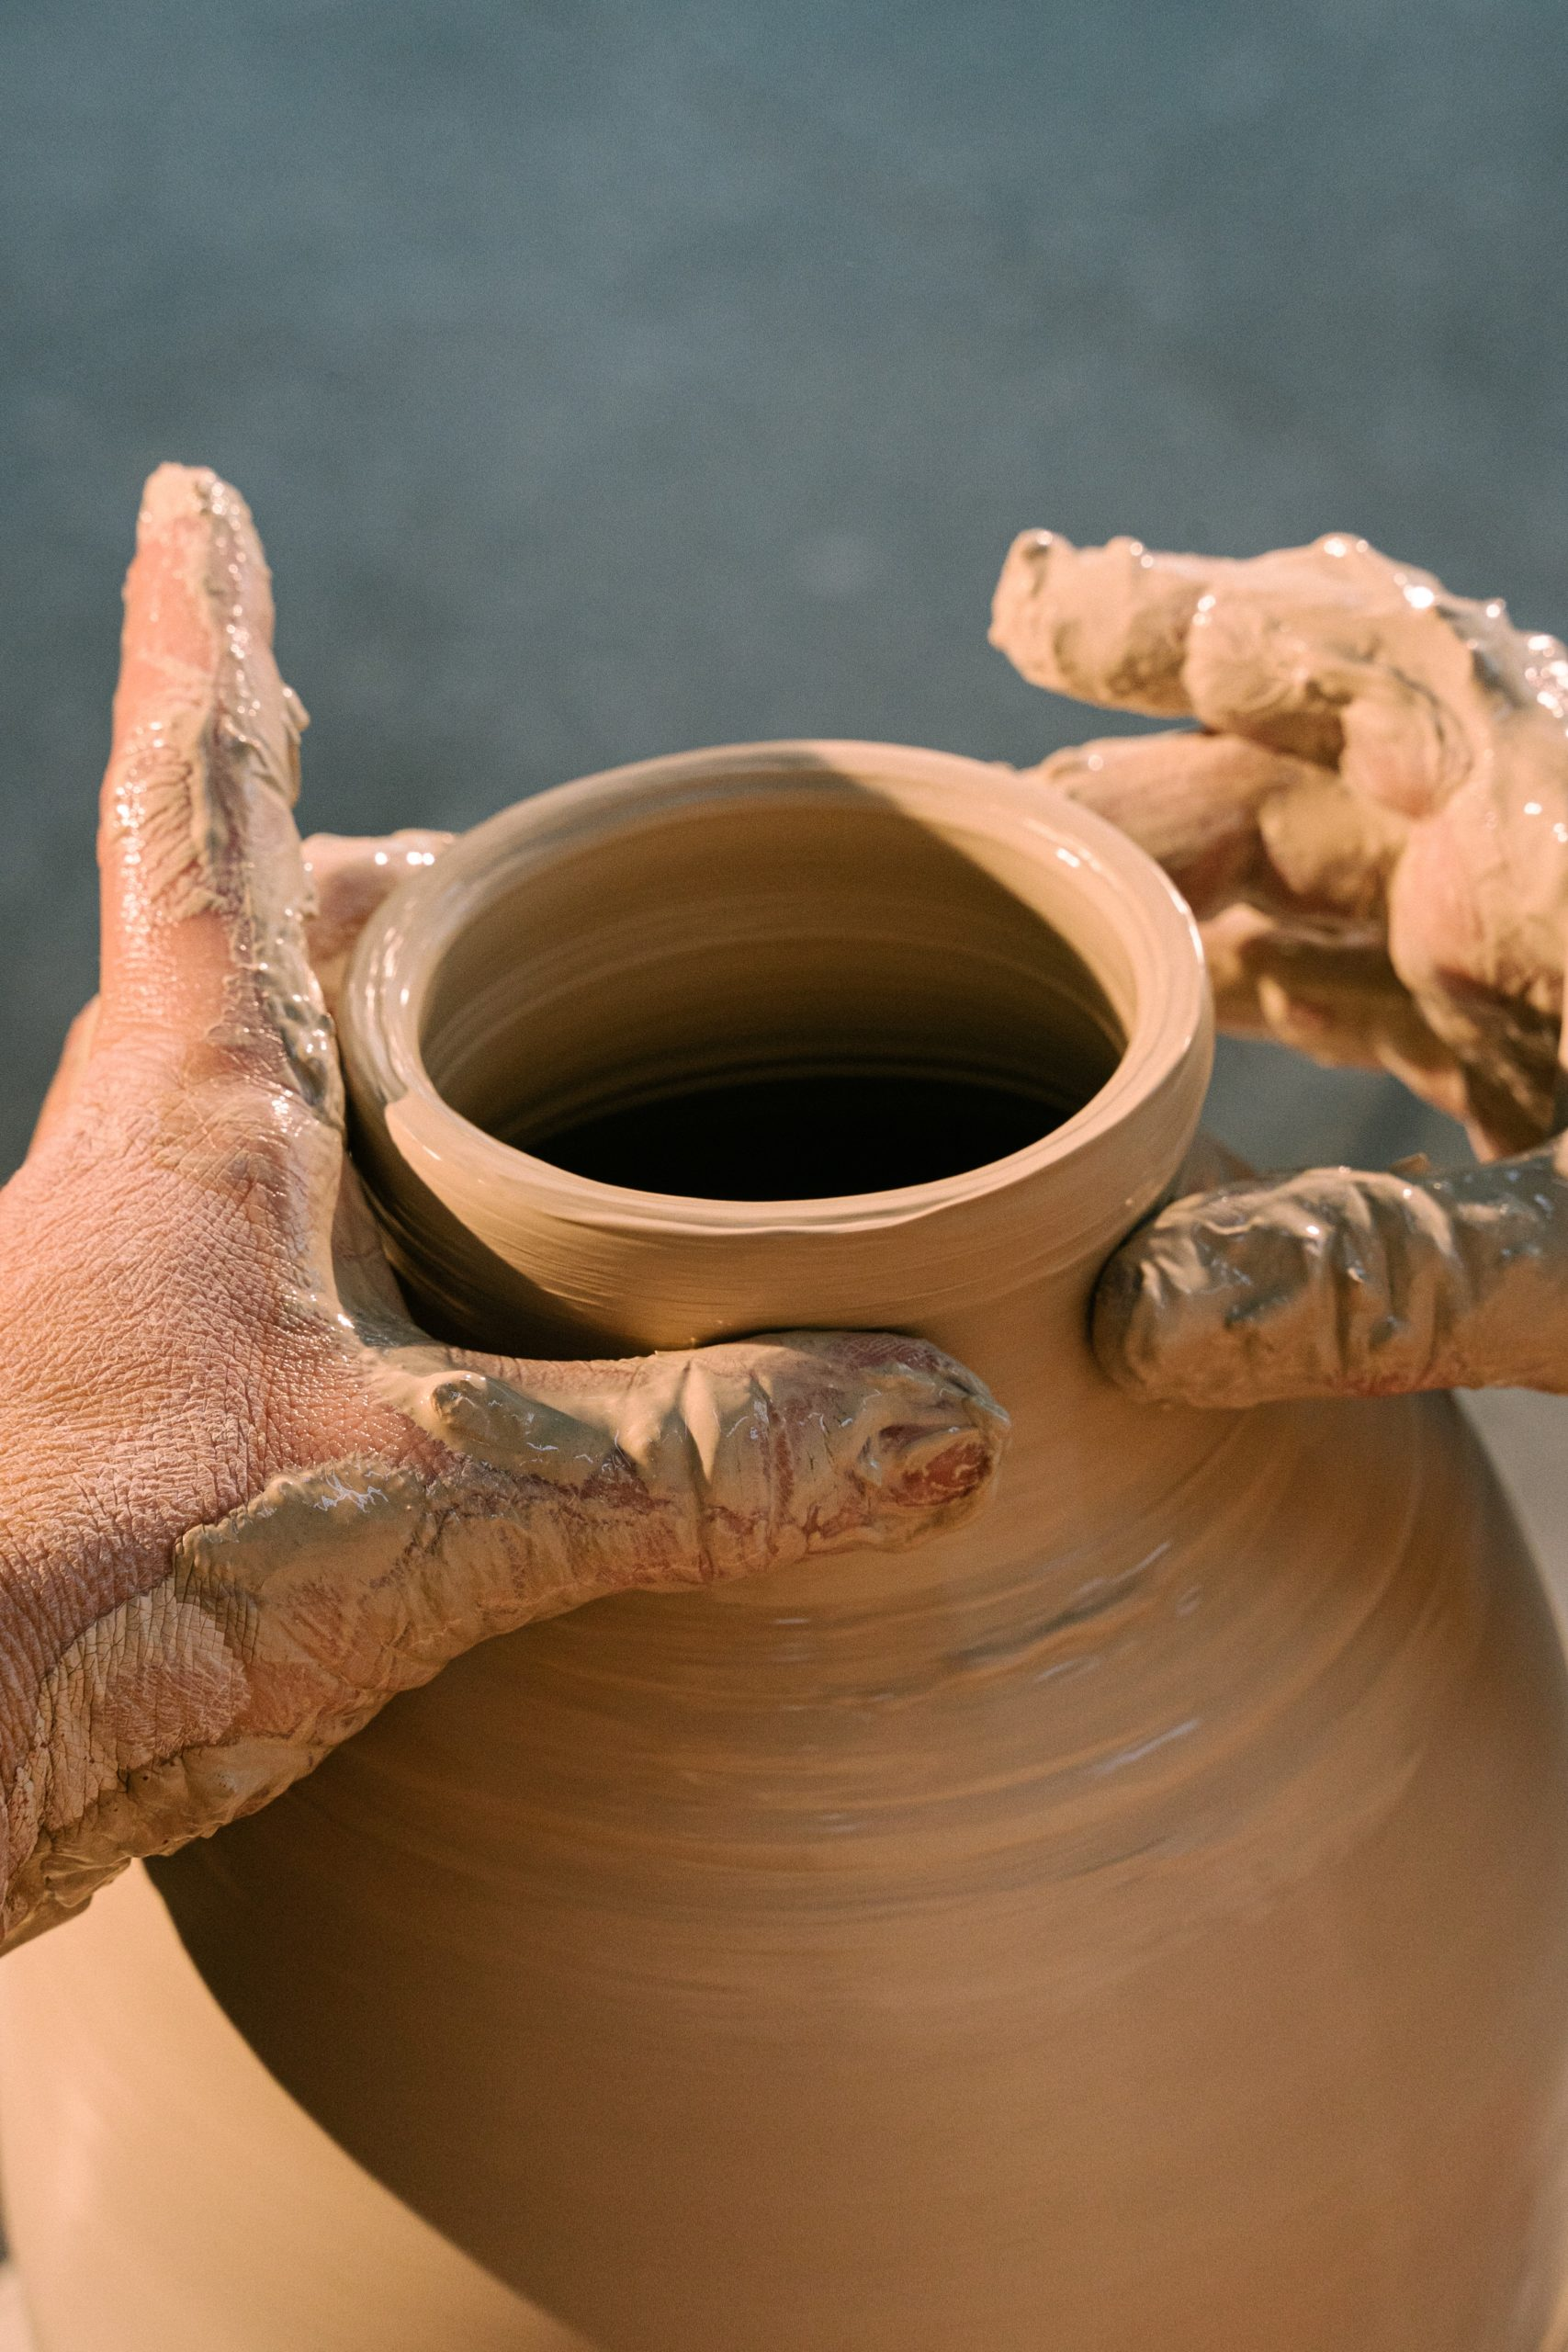 A pair of muddy hands is working a clay pot on a potting wheel